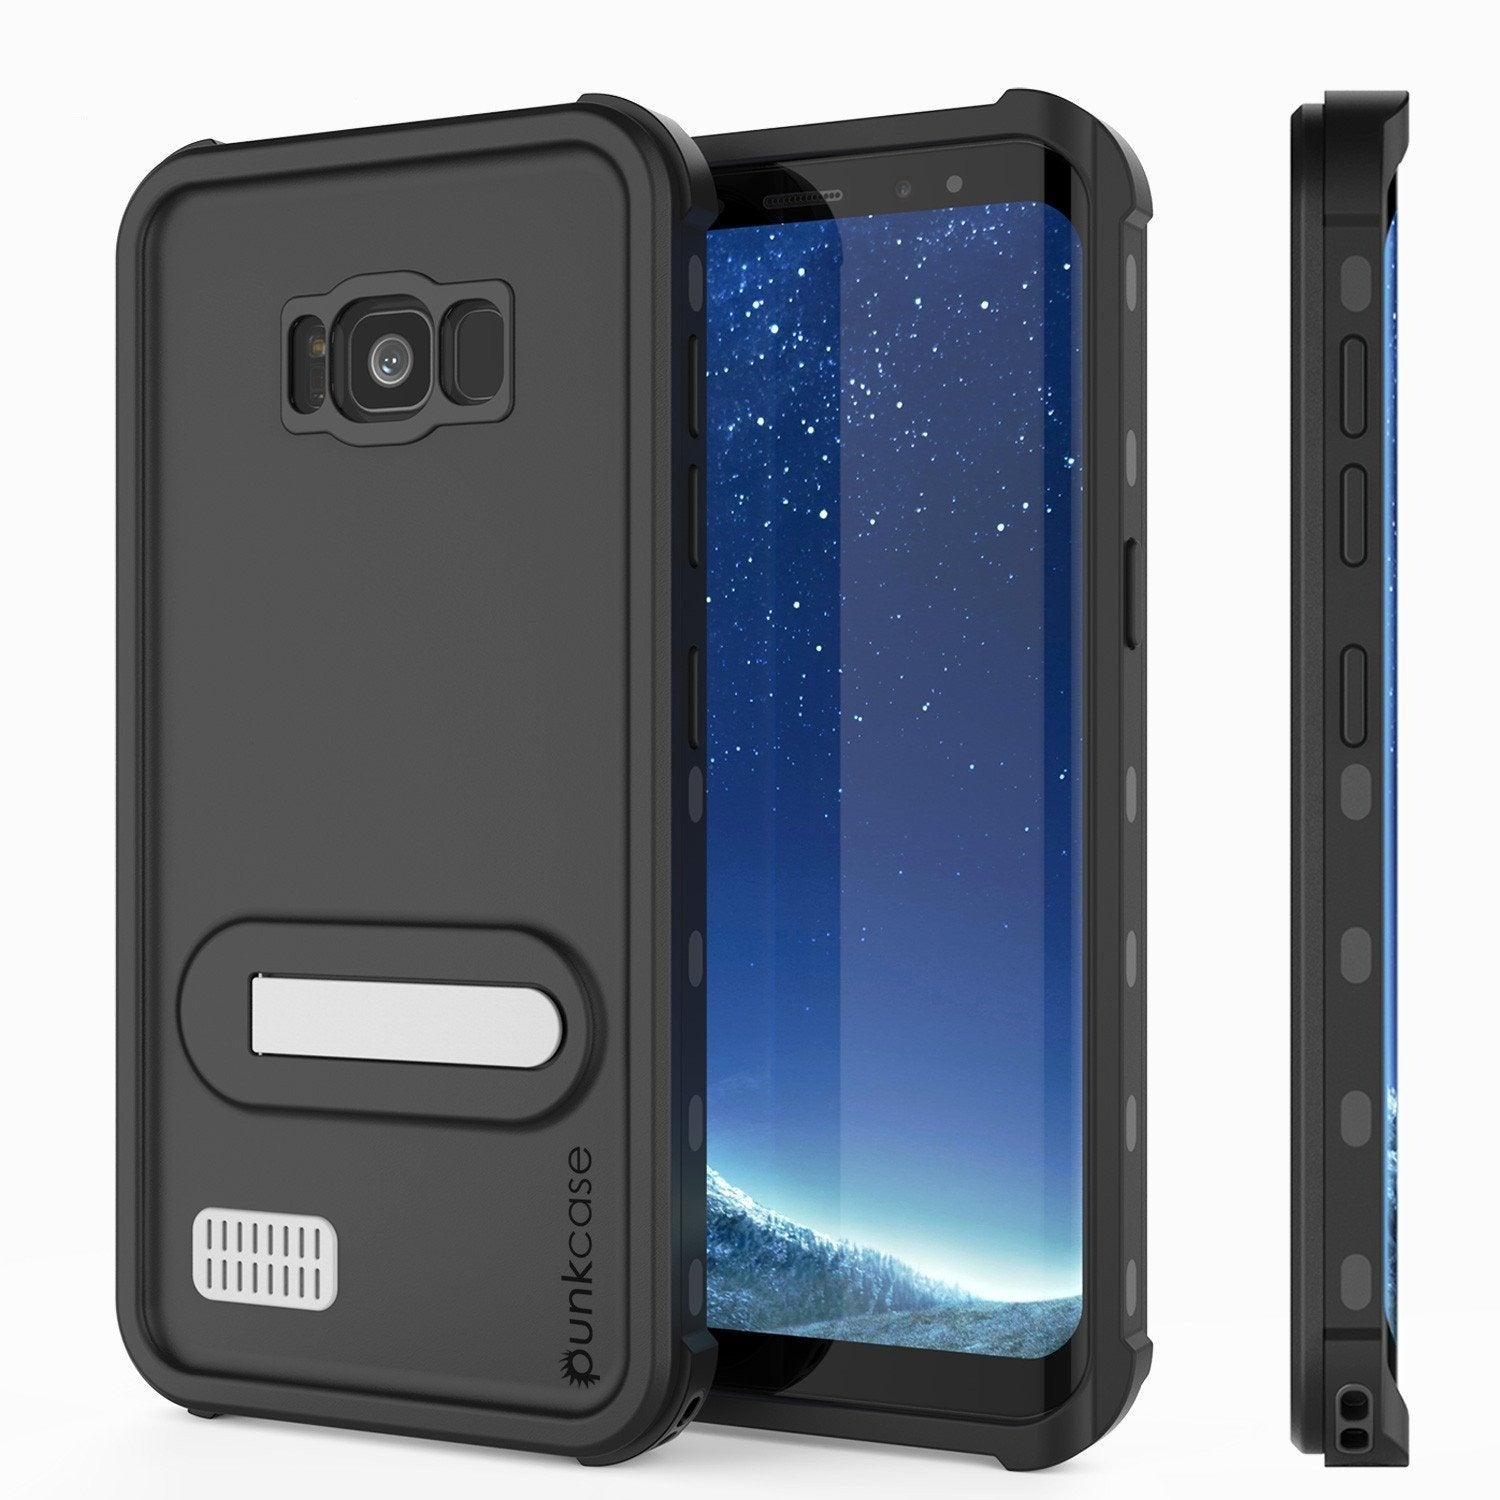 Protector [PURPLE]Galaxy S8 Waterproof Case, Punkcase [KickStud Series] [Slim Fit] [IP68 Certified] [Shockproof] [Snowproof] Armor Cover [Black] - PunkCase NZ